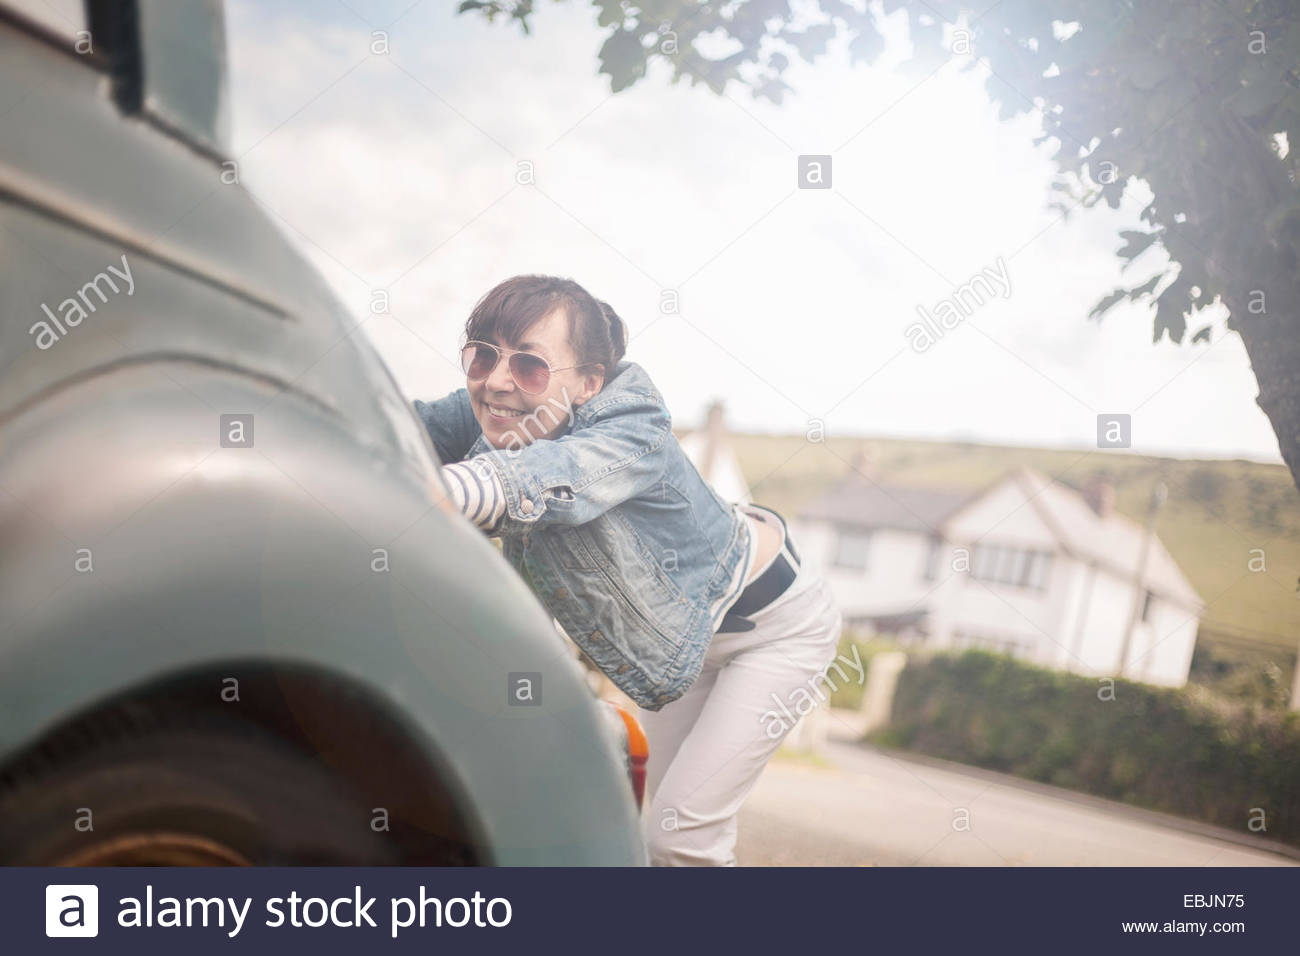 Woman pushing broken down car - Stock Image